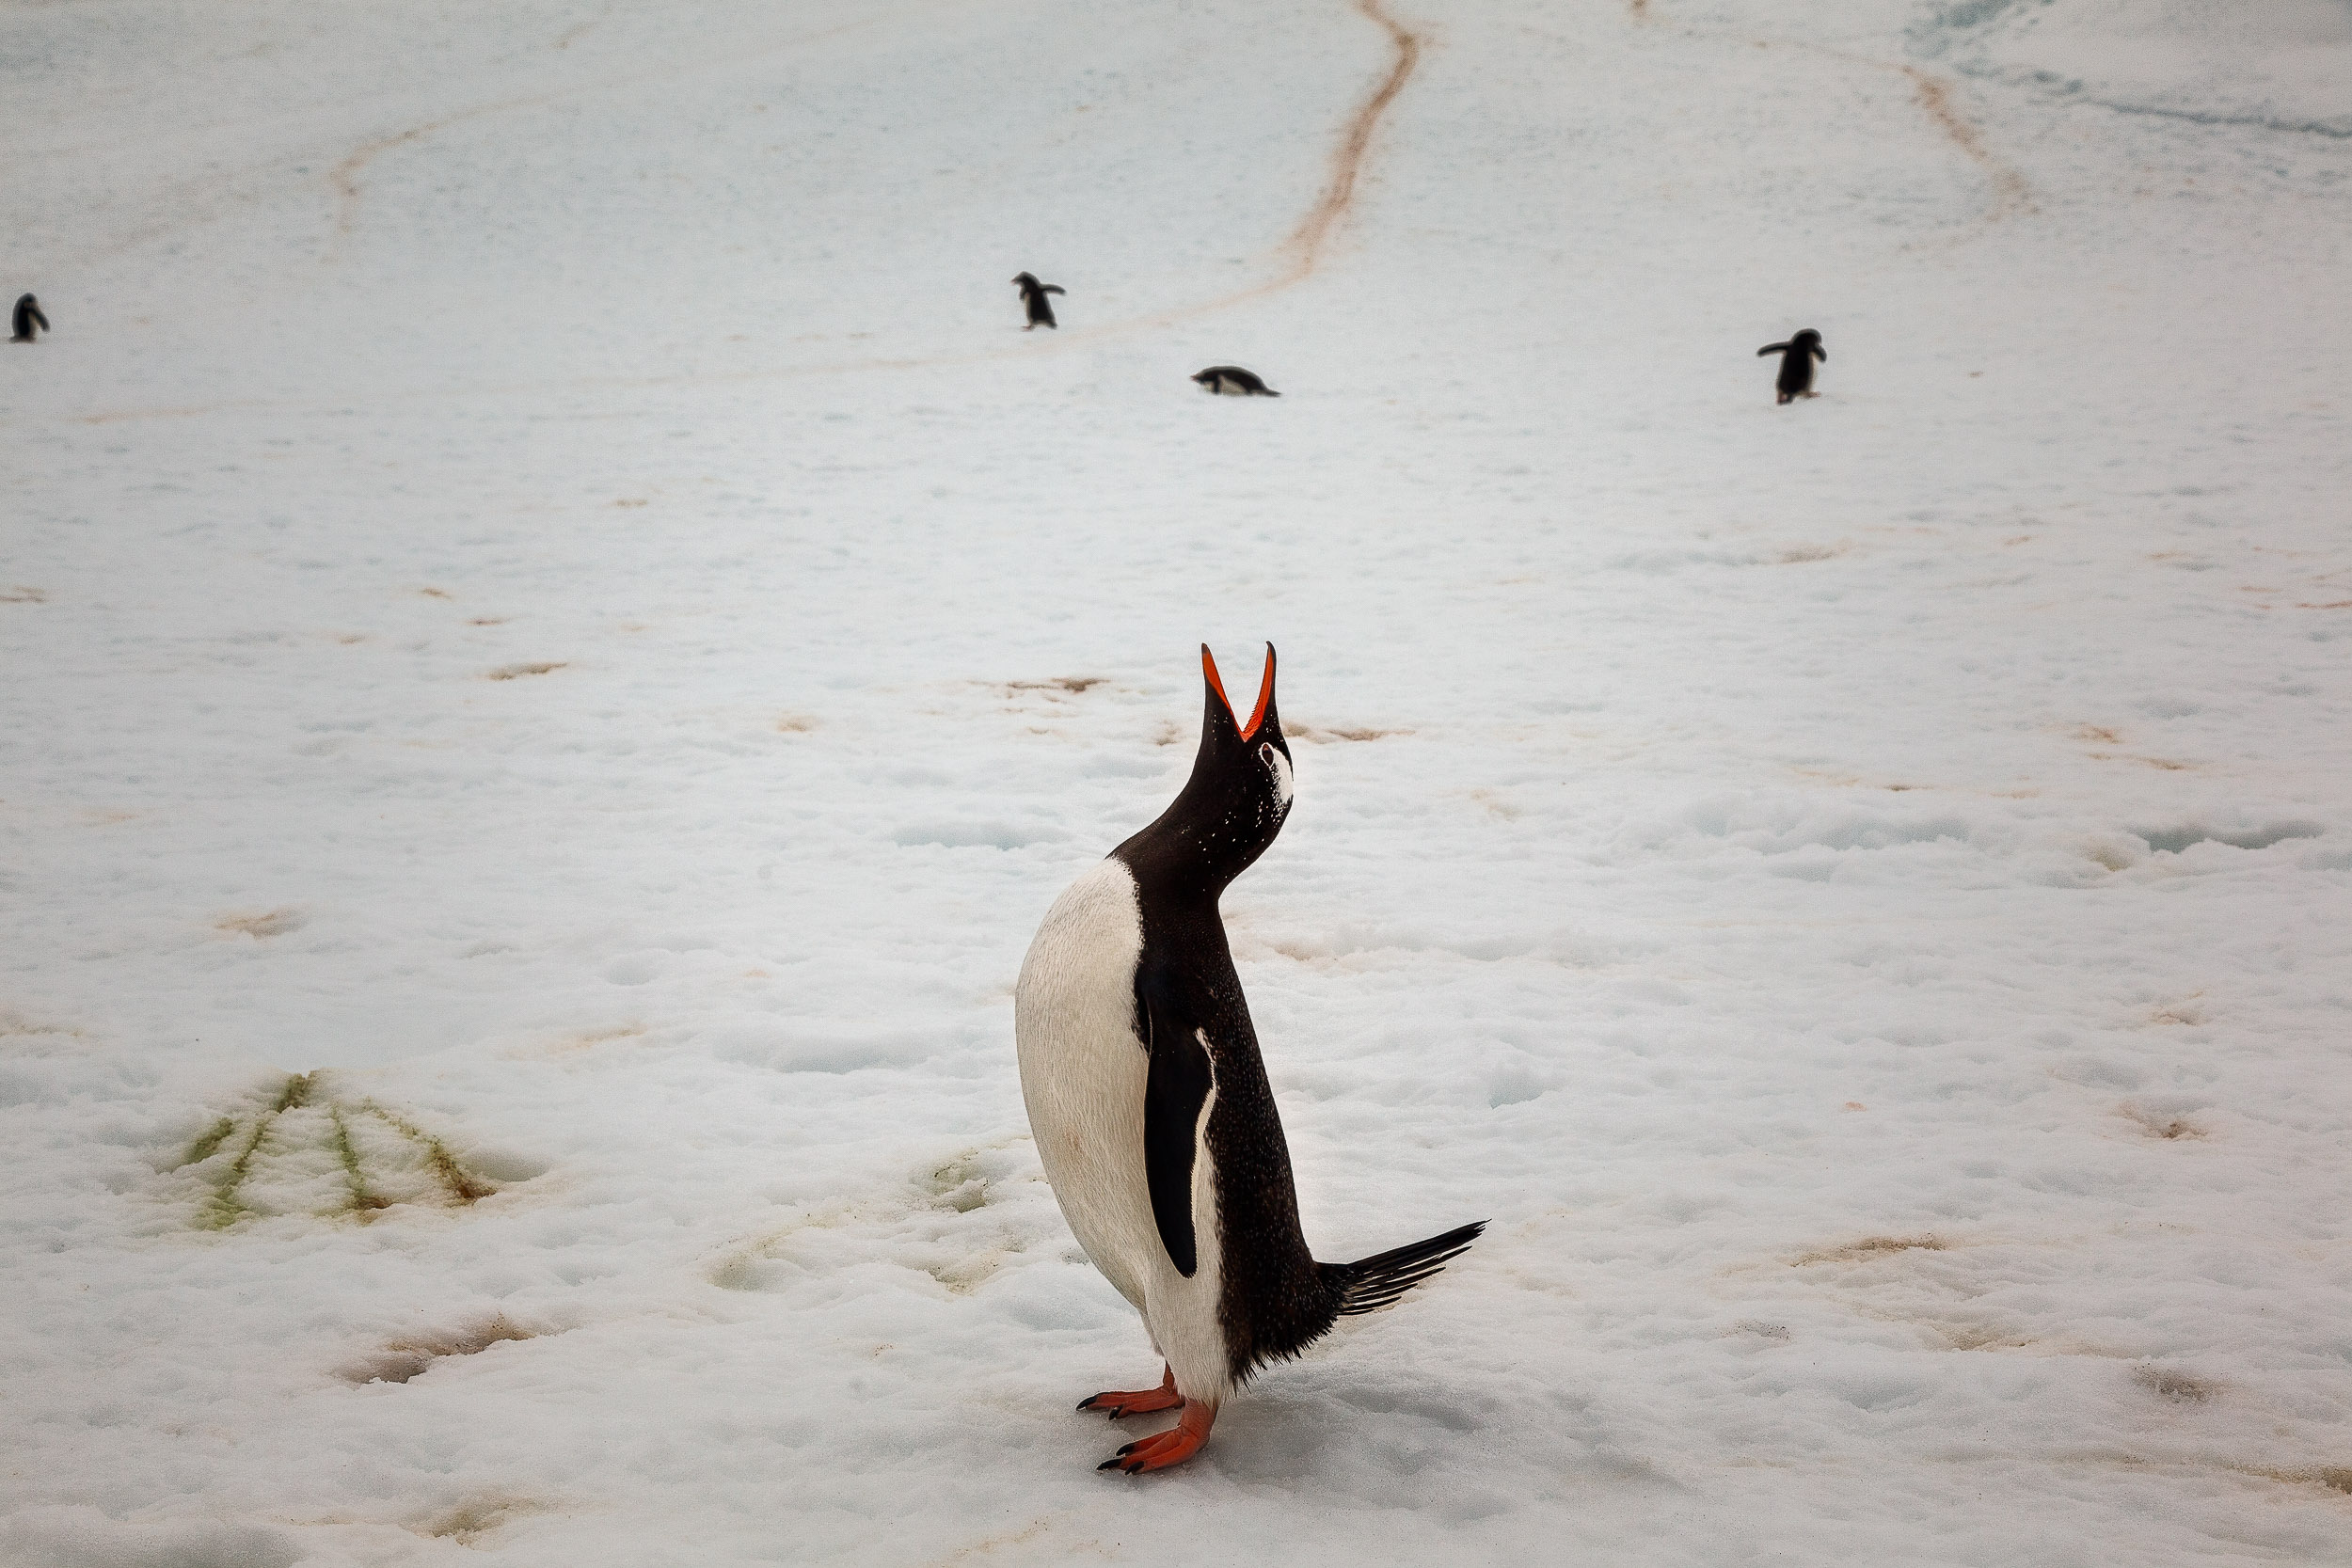 A humorous image of a    King Penguin    on    Cuverville Island, Antarctica   .